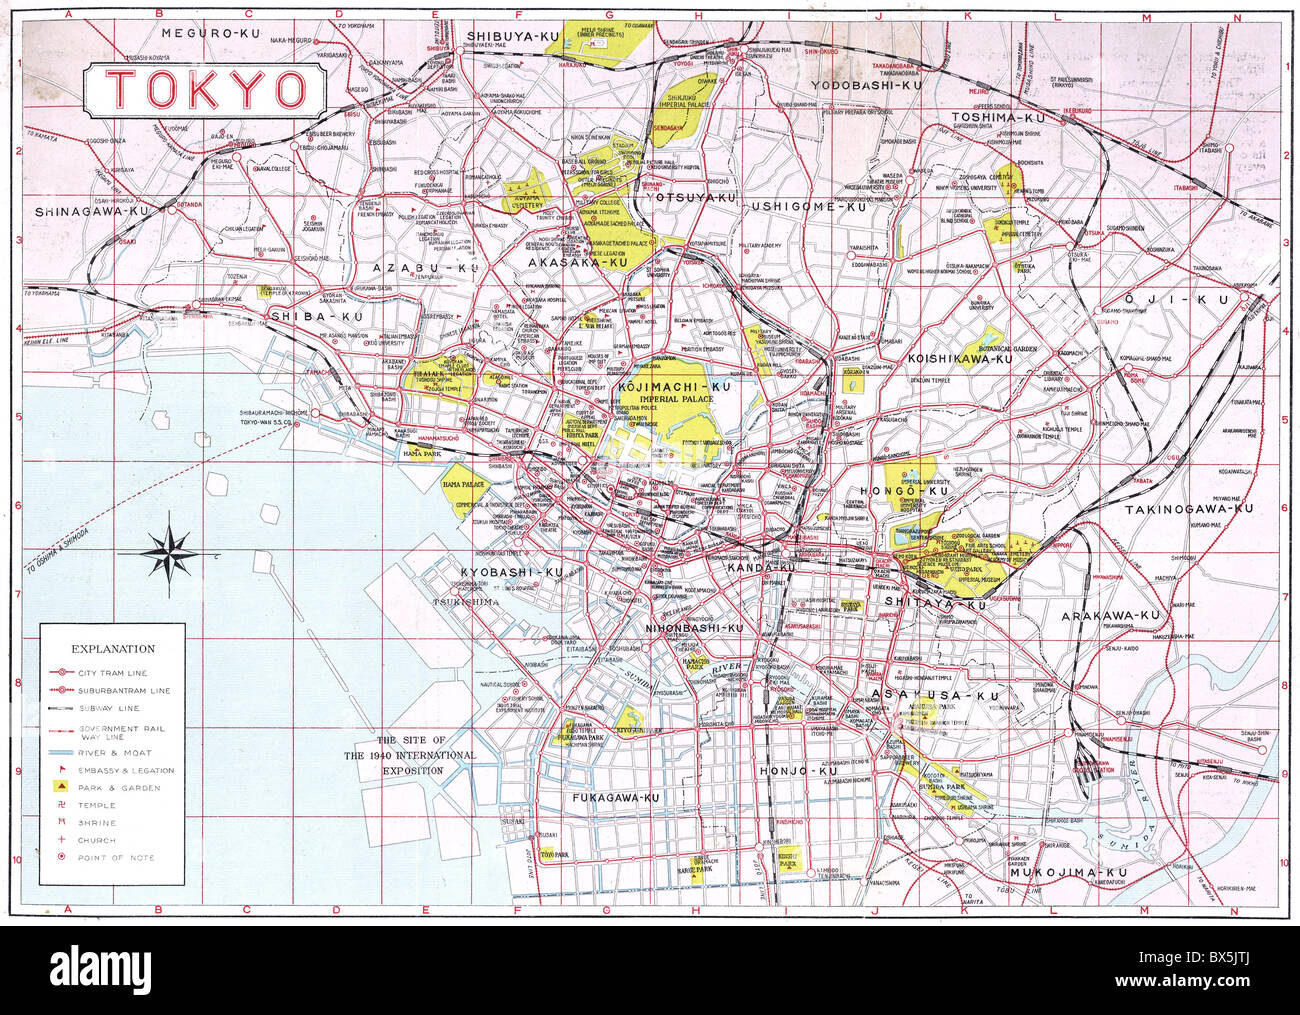 Geography travel japan tokyo city map circa 1936 maps 20th geography travel japan tokyo city map circa 1936 maps 20th century historic historical 1930s 30s asia gumiabroncs Choice Image